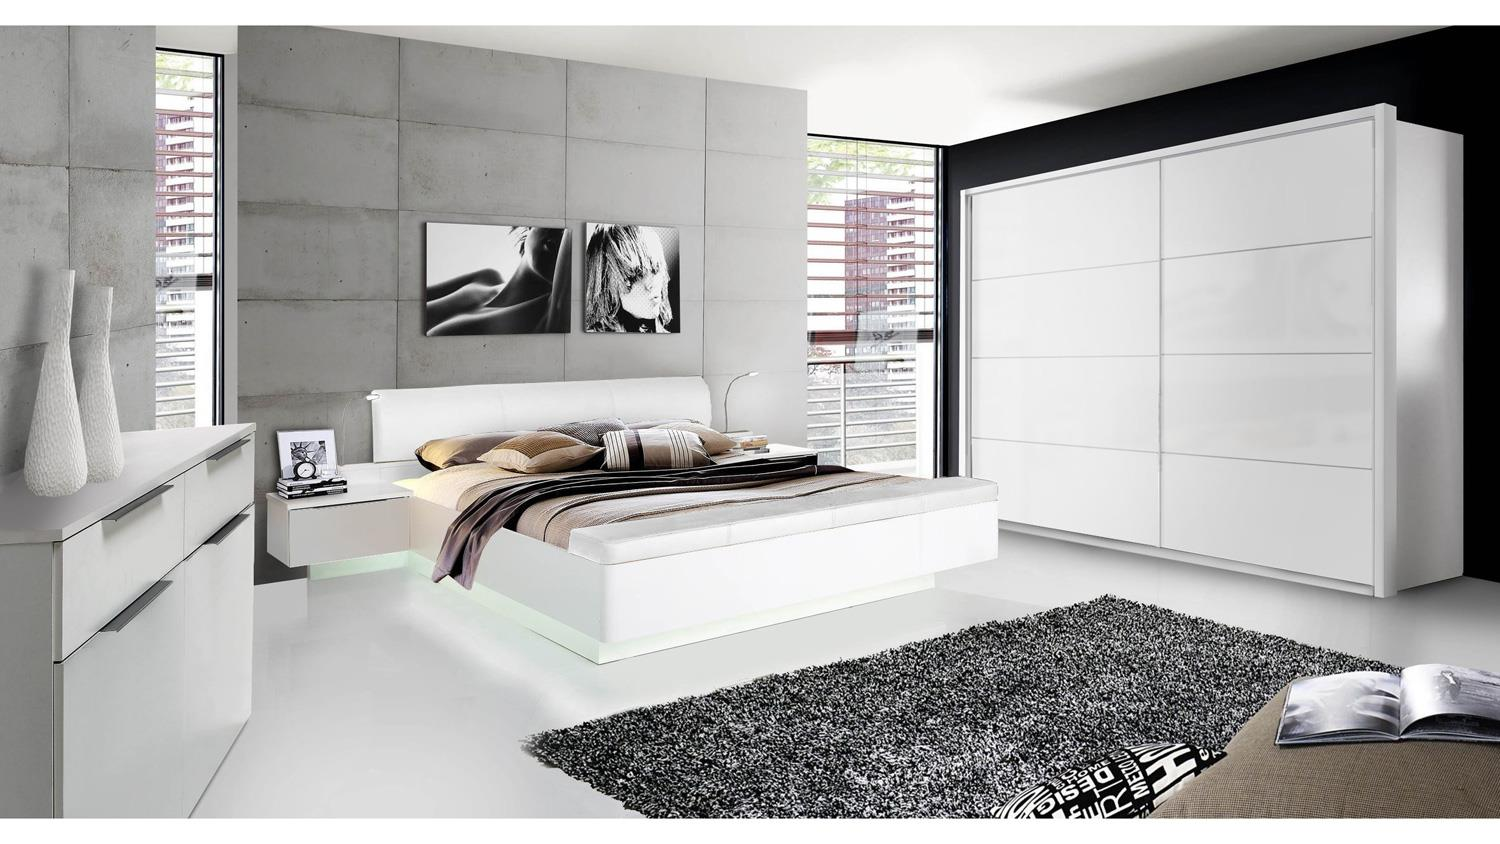 schlafzimmer starlet plus bettanlage schrank kommode in wei hochglanz. Black Bedroom Furniture Sets. Home Design Ideas